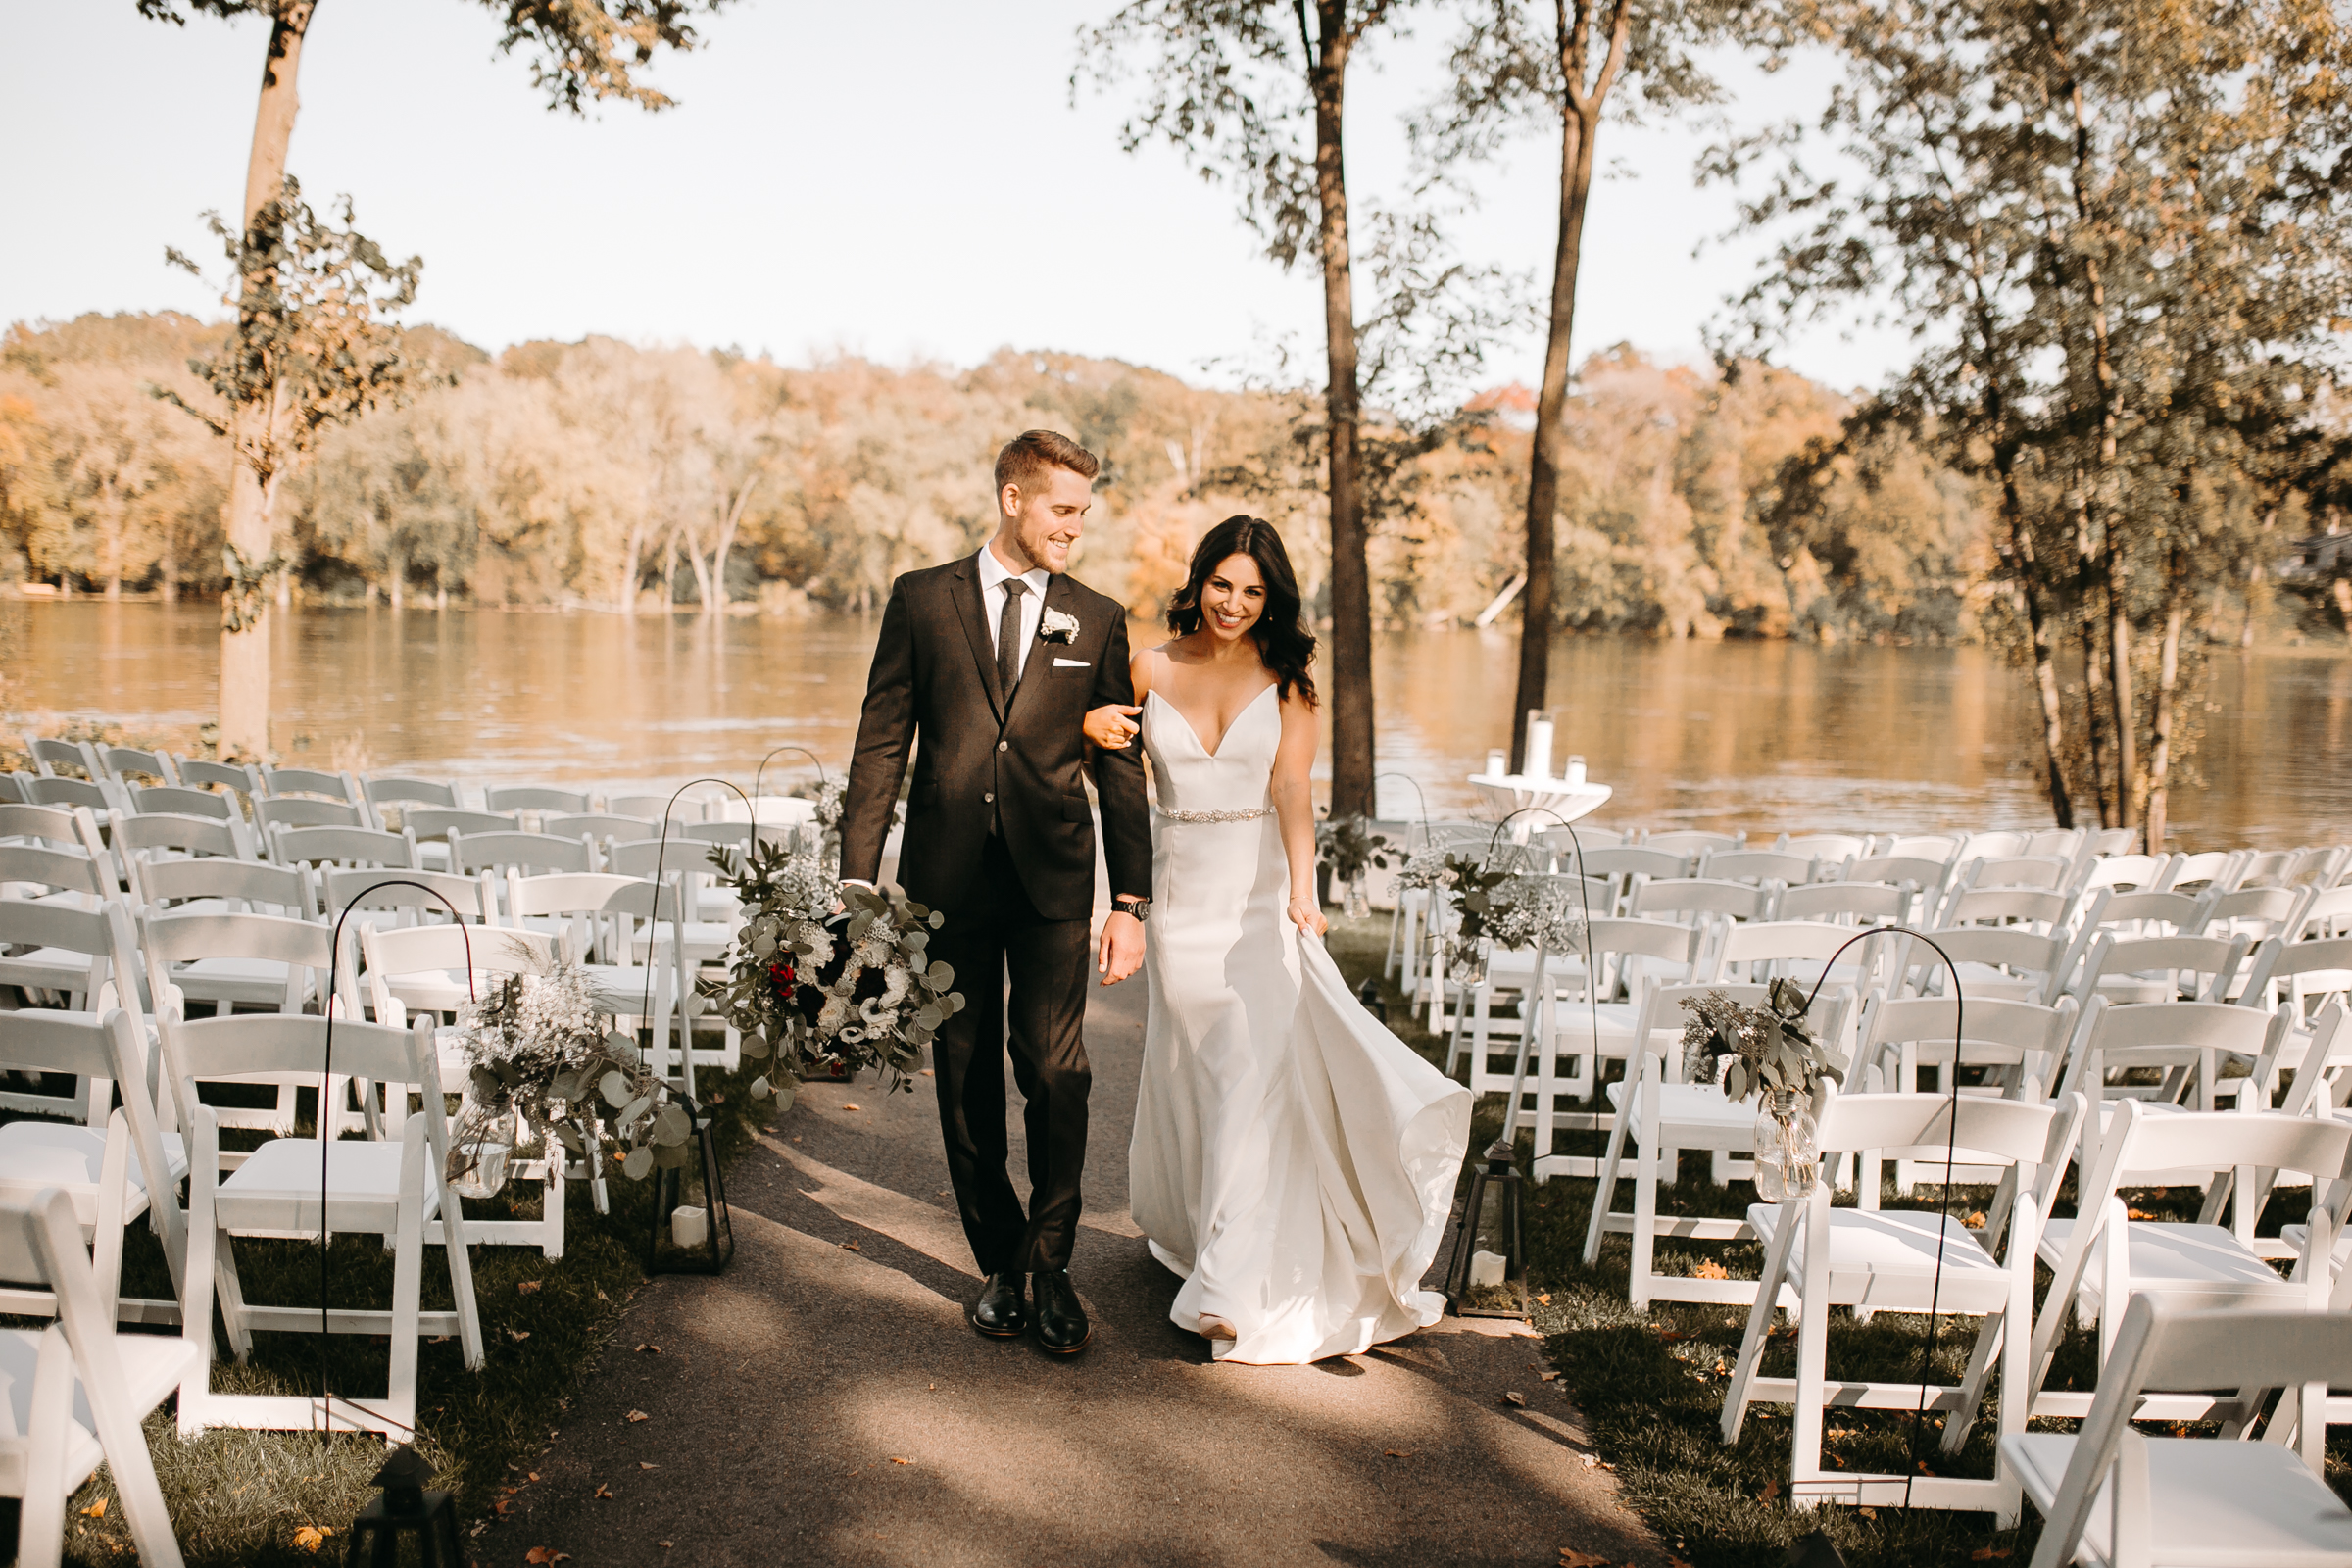 A wedding on the Mississippi River